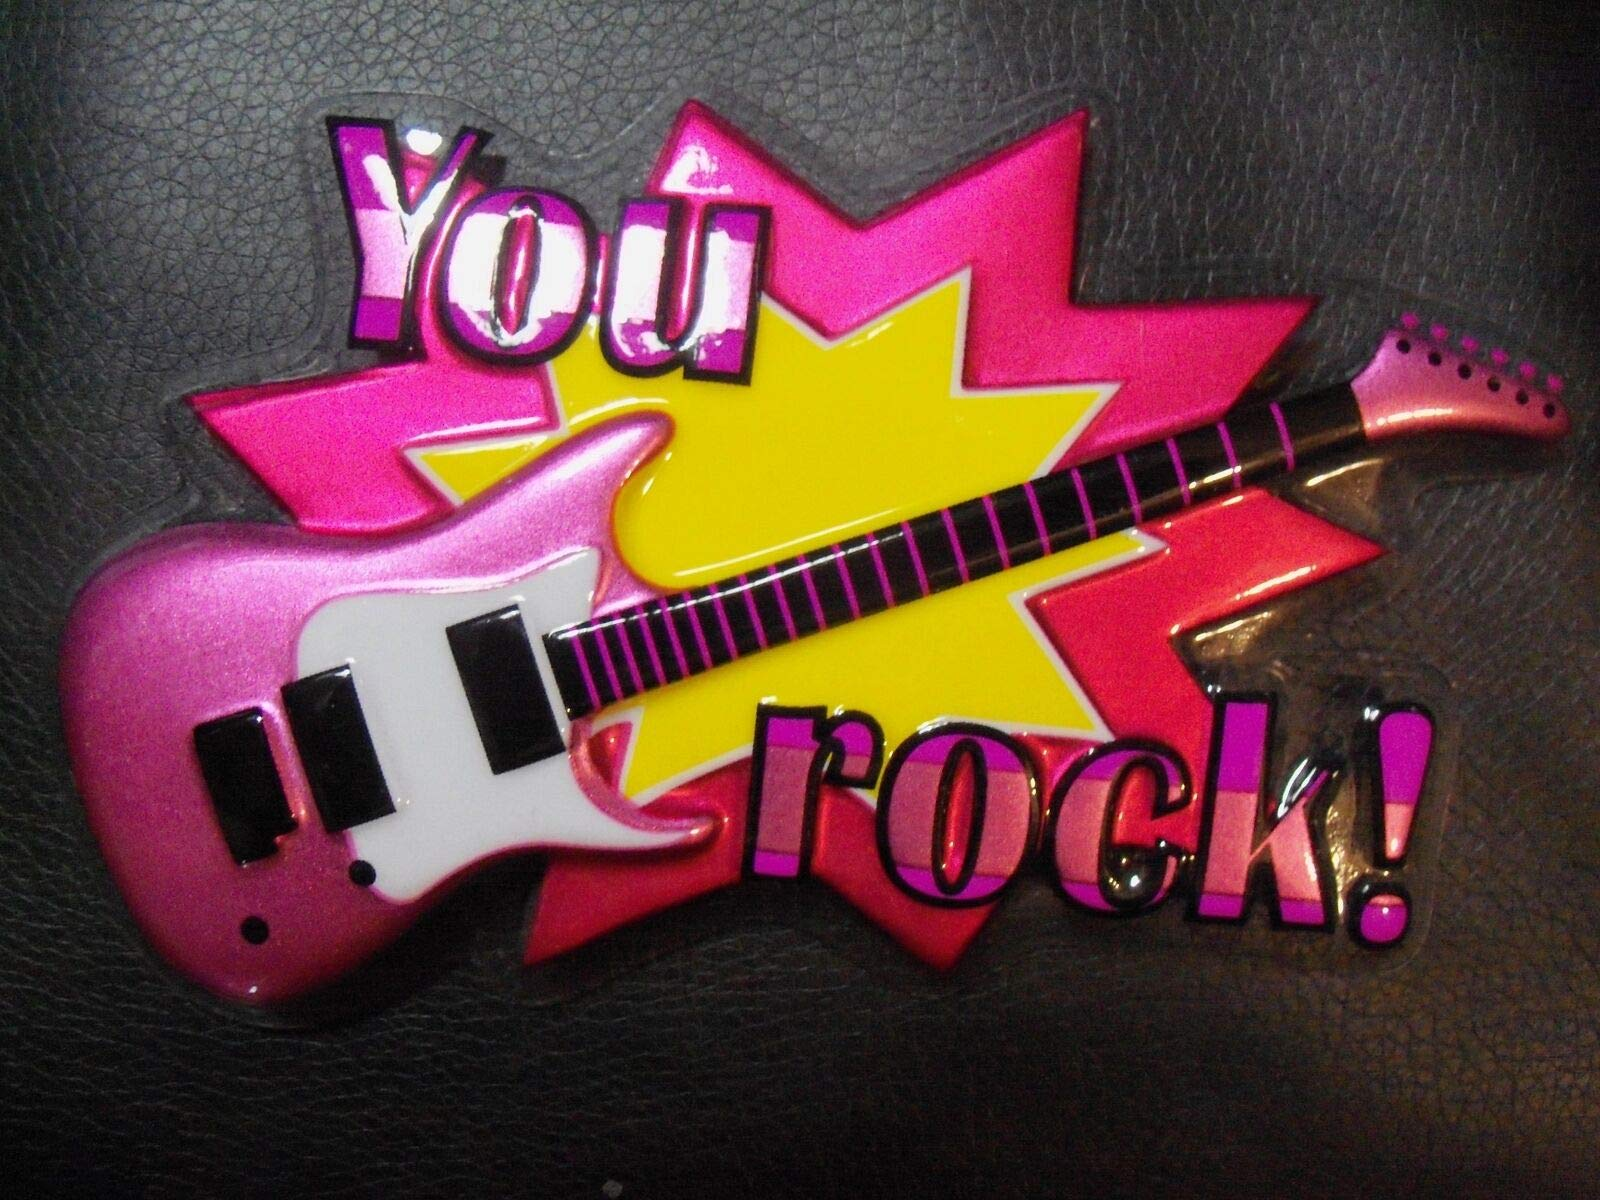 Cheap Risalana 1 You Rock Guitar Emblem Cake Topper Music Party Electric Guitar(Pink Rock On) Black Friday & Cyber Monday 2019